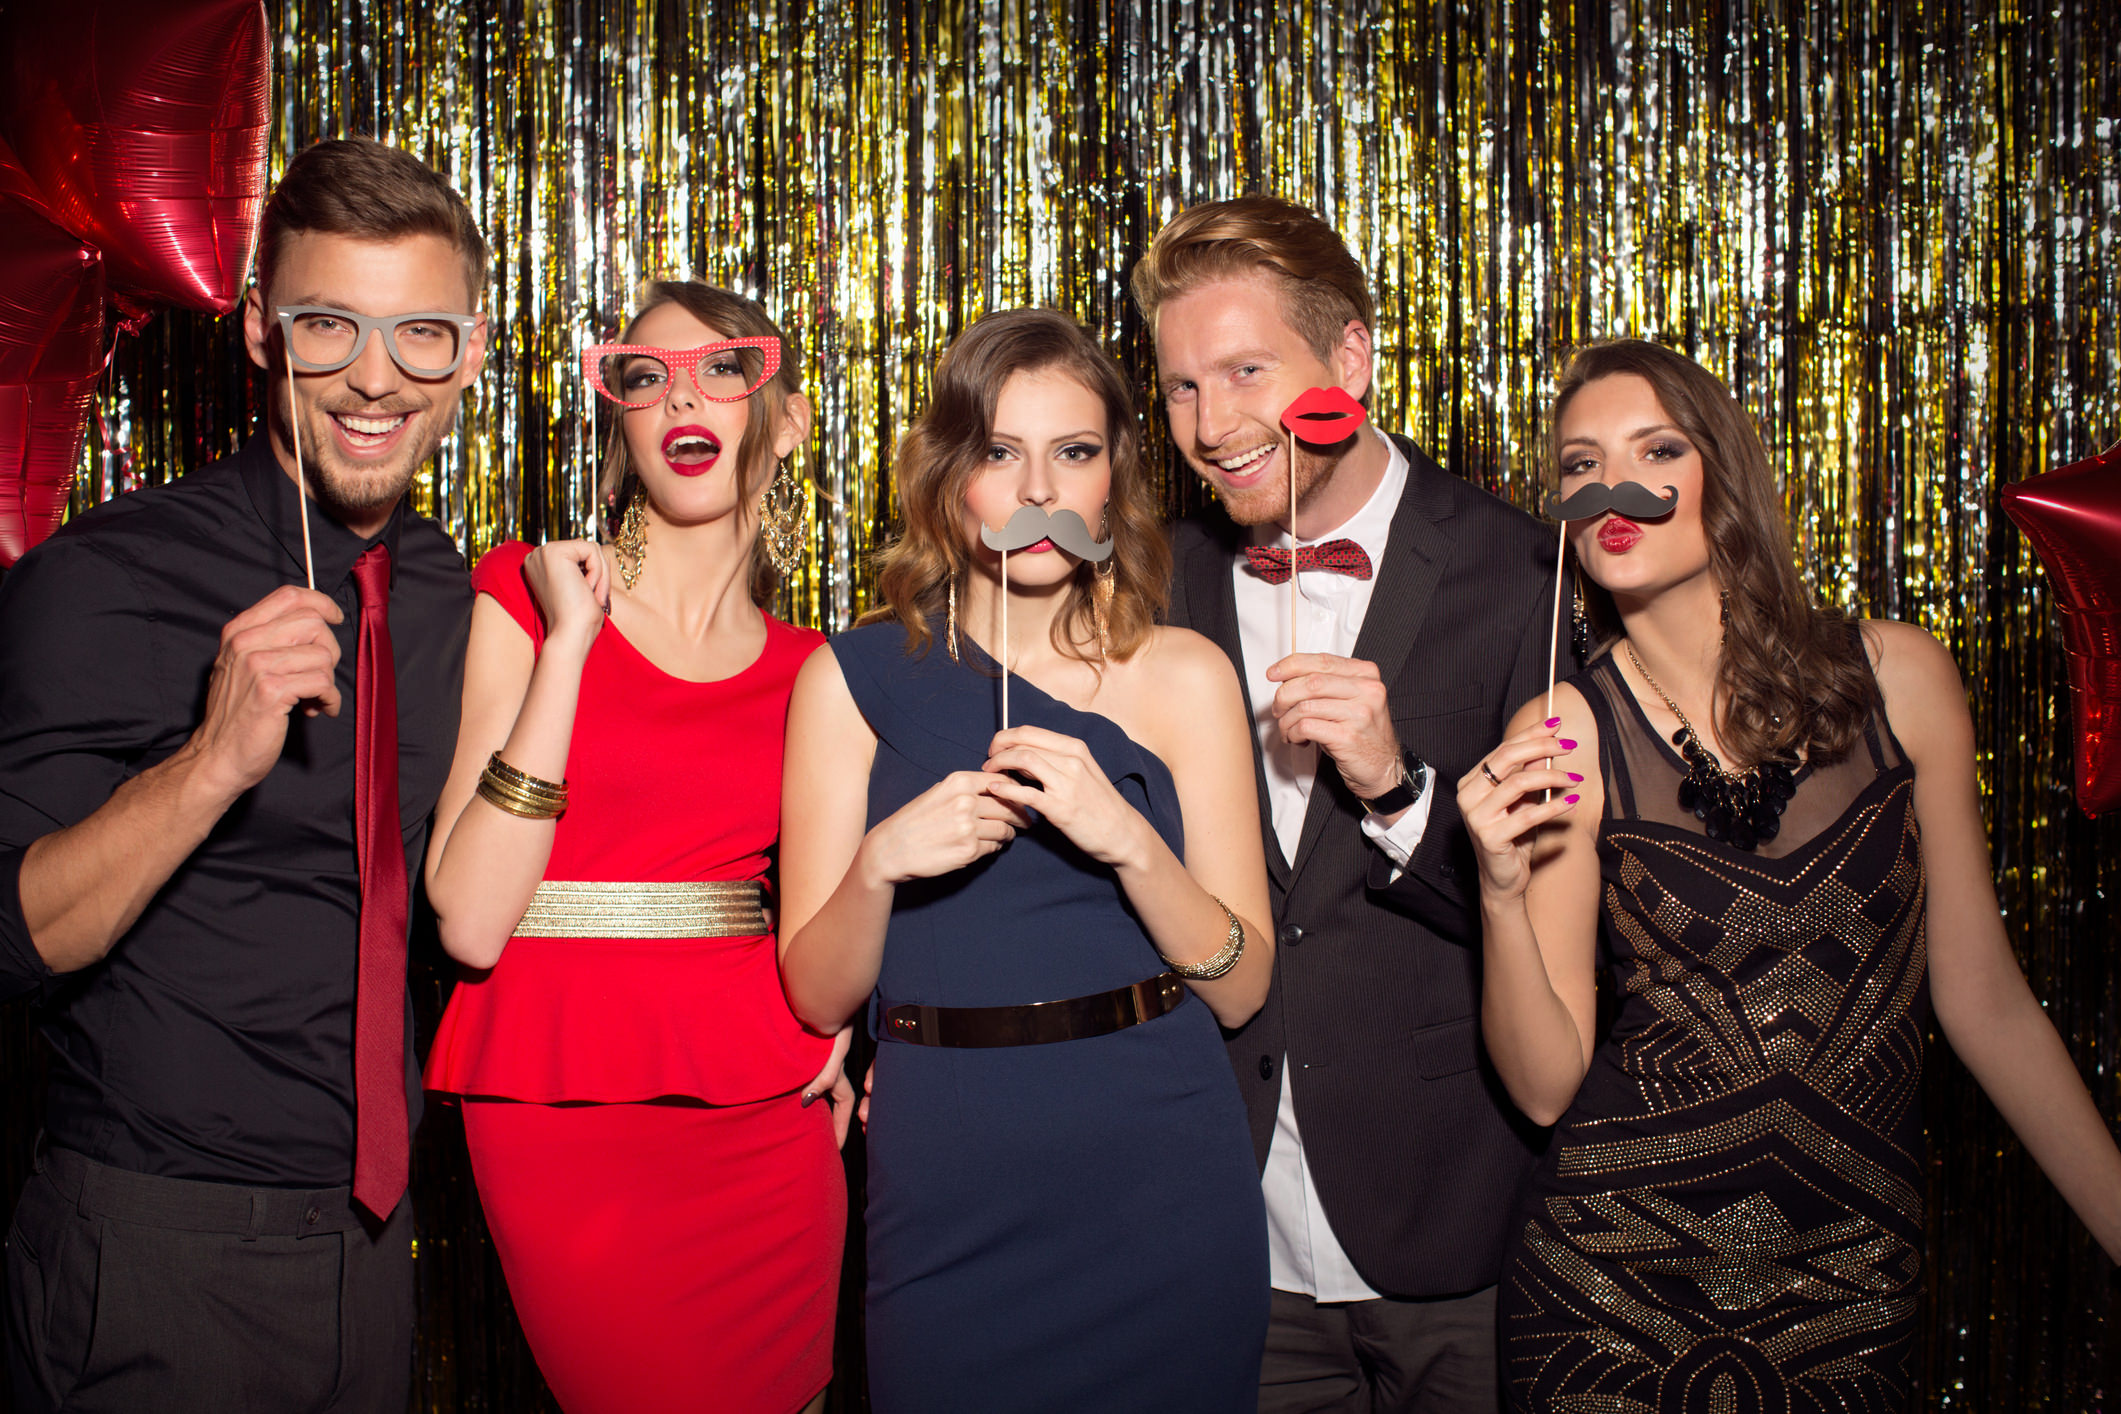 9 Ways to Boost Your Business With a Photo Booth